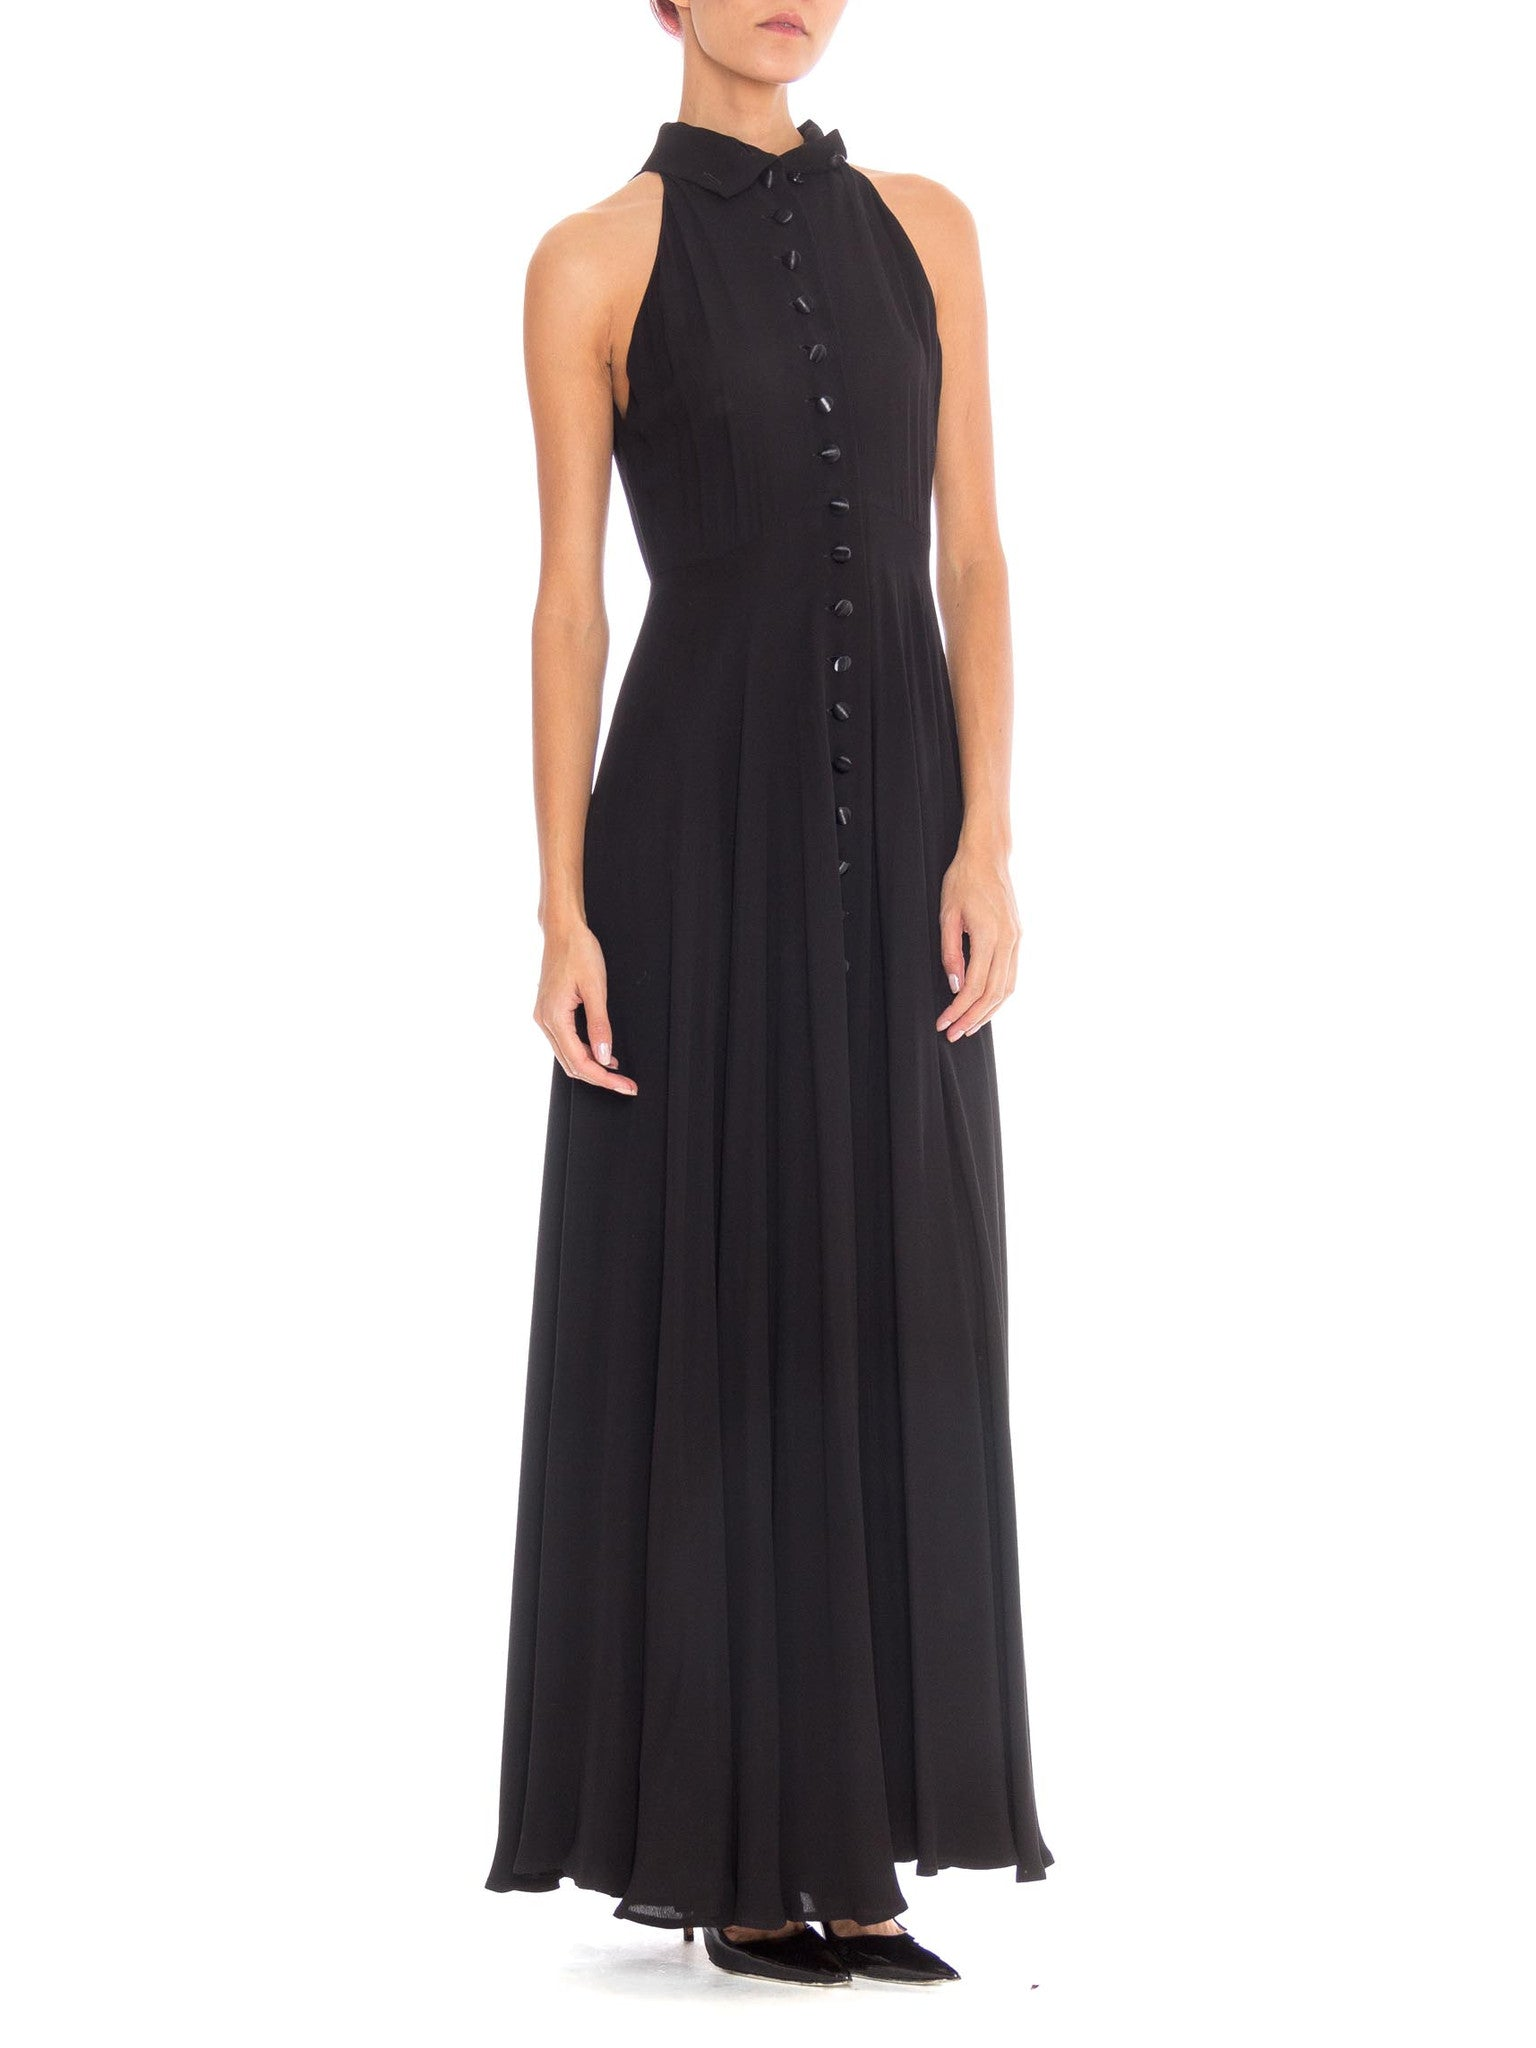 1990s Black Button Front High Neck Maxi Dress